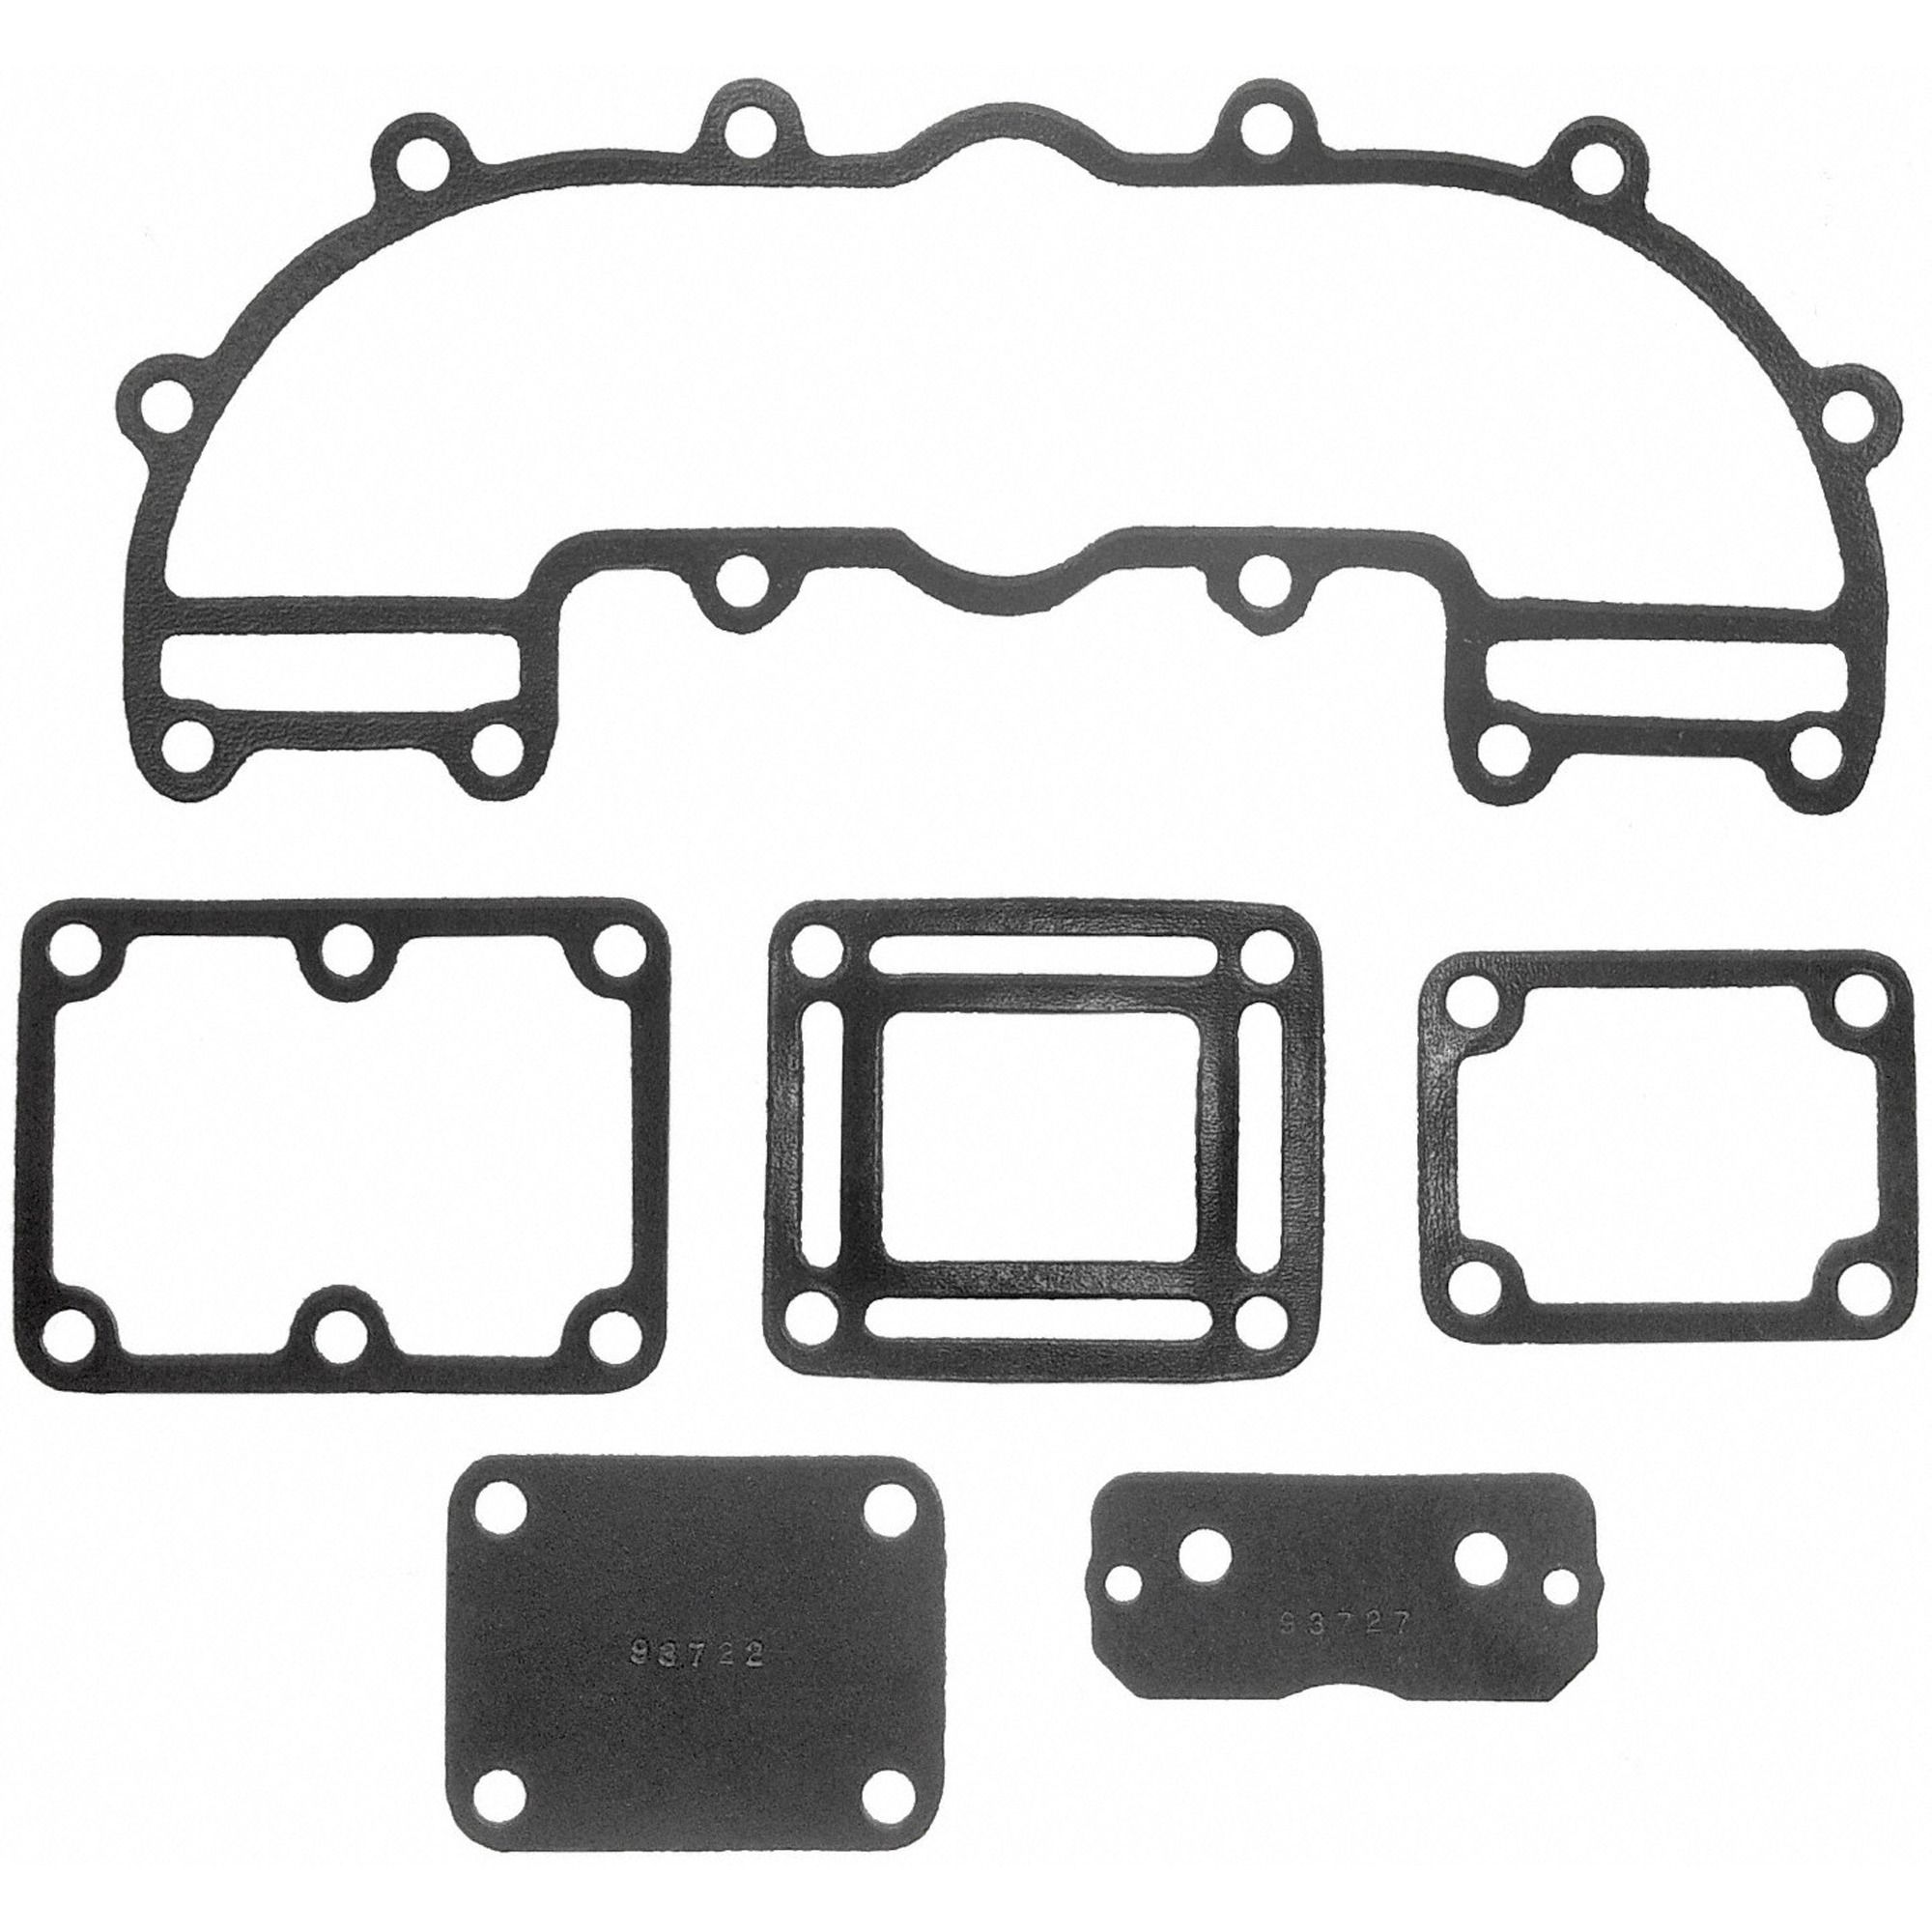 Exhaust Manifold Heat Exchanger Gasket